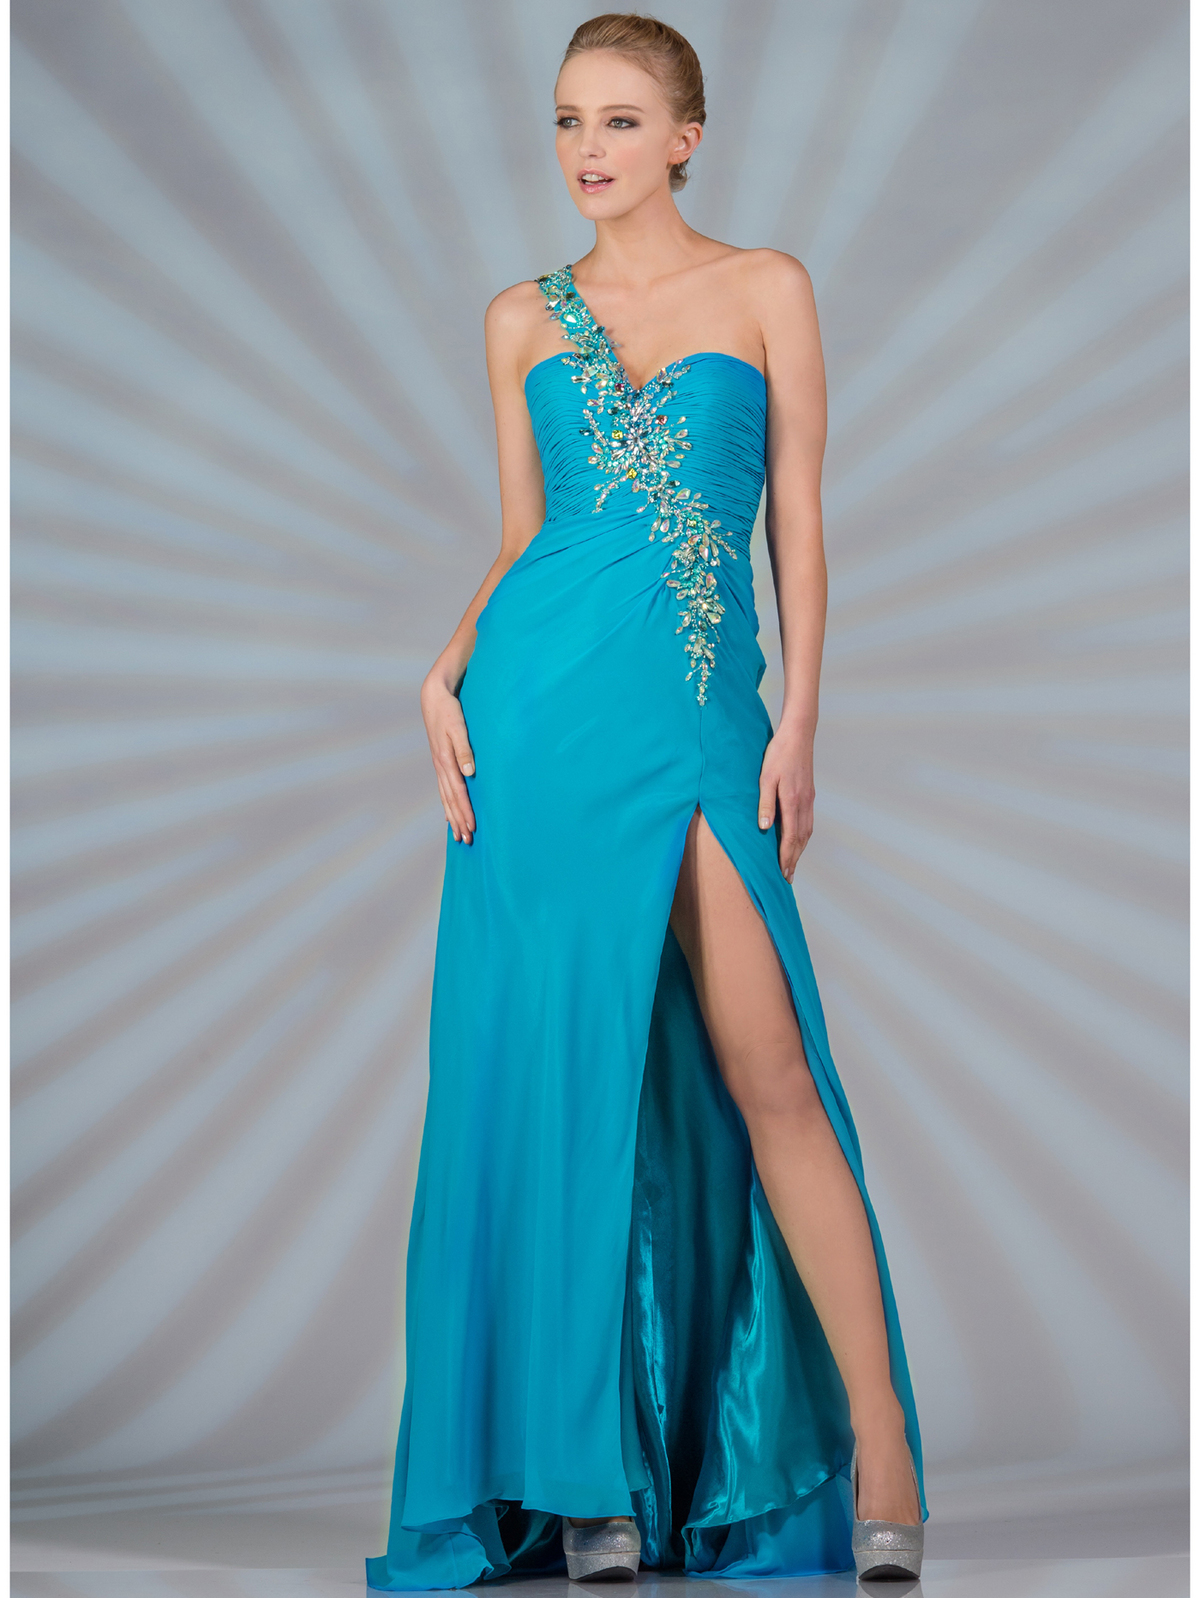 Jeweled and Beaded One Shoulder Prom Dress - Sung Boutique L.A.